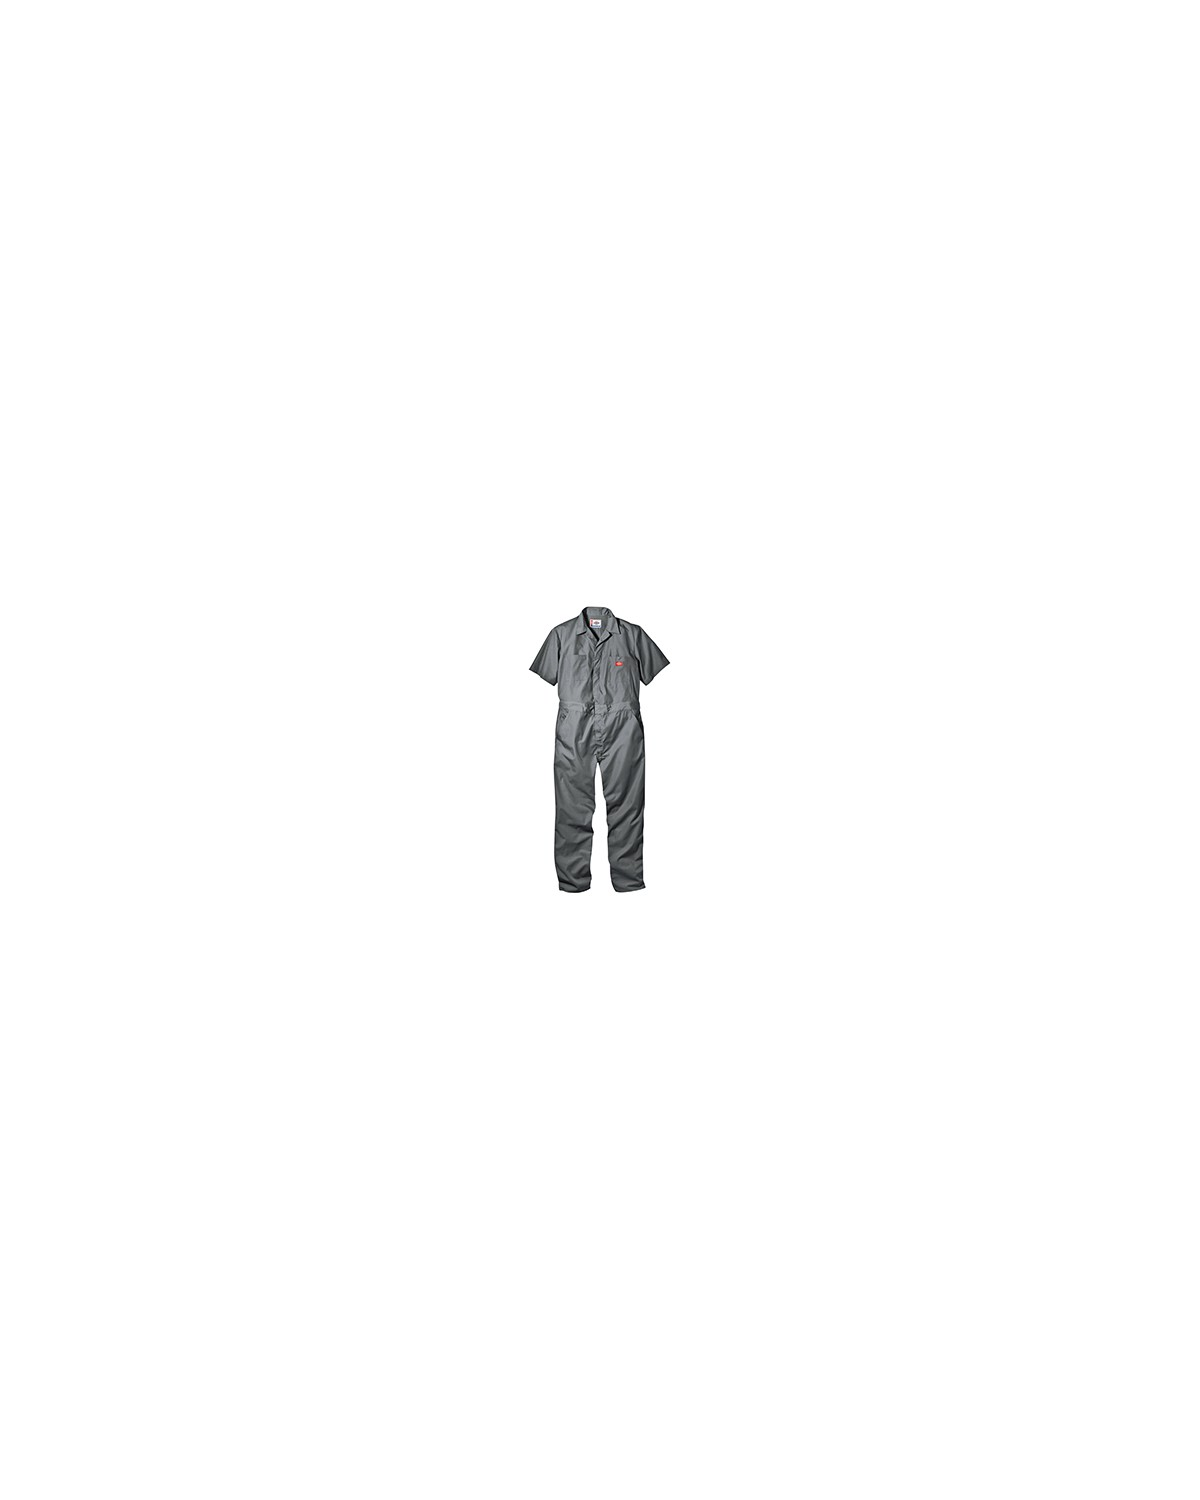 33999 Dickies GRAY 3XL